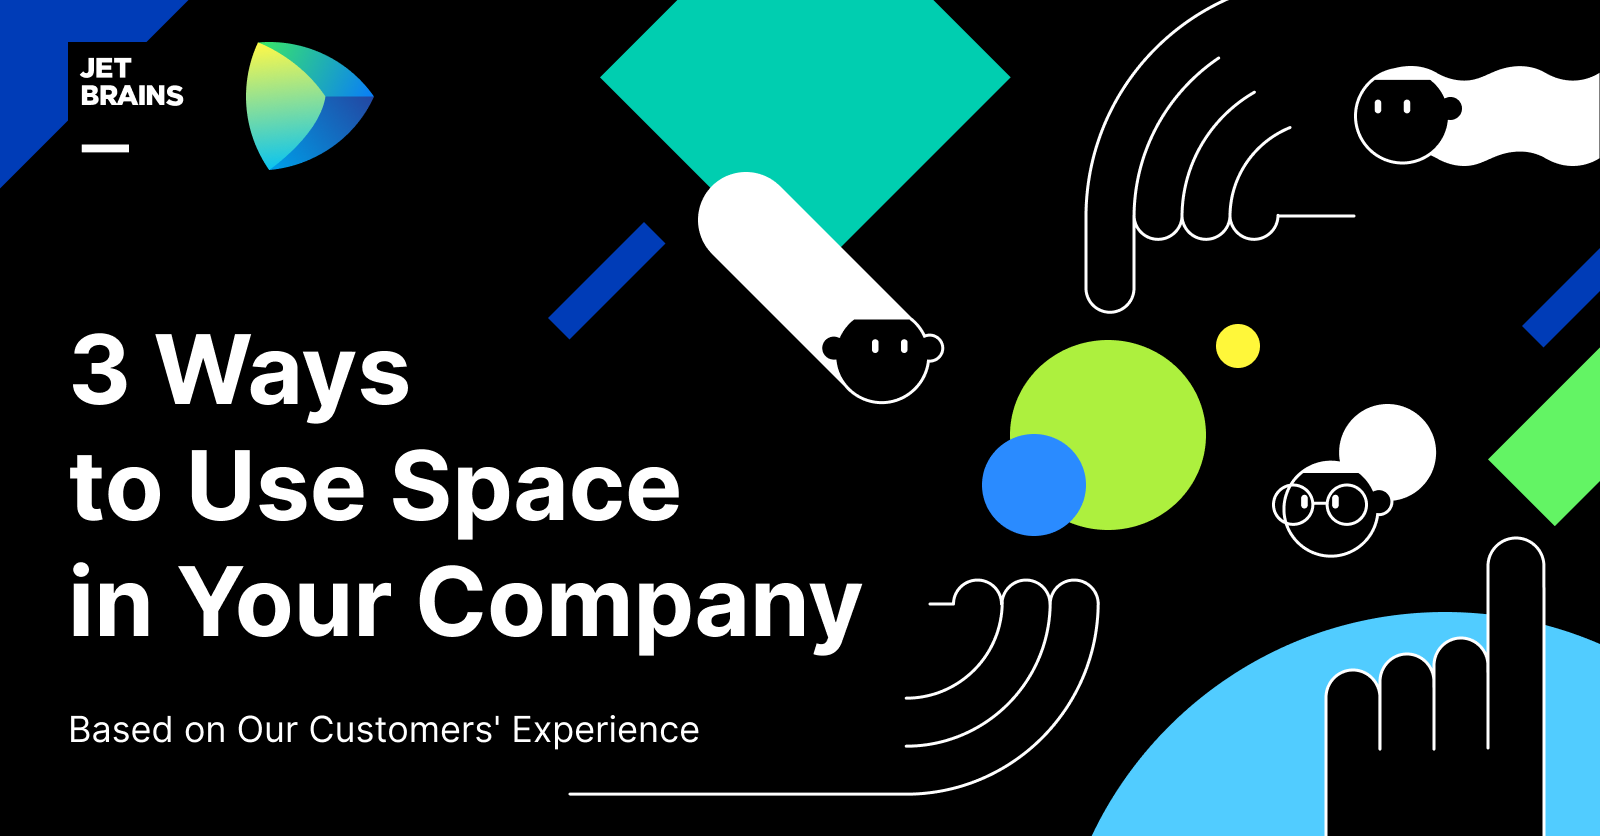 3 Ways to Use Space in Your Company